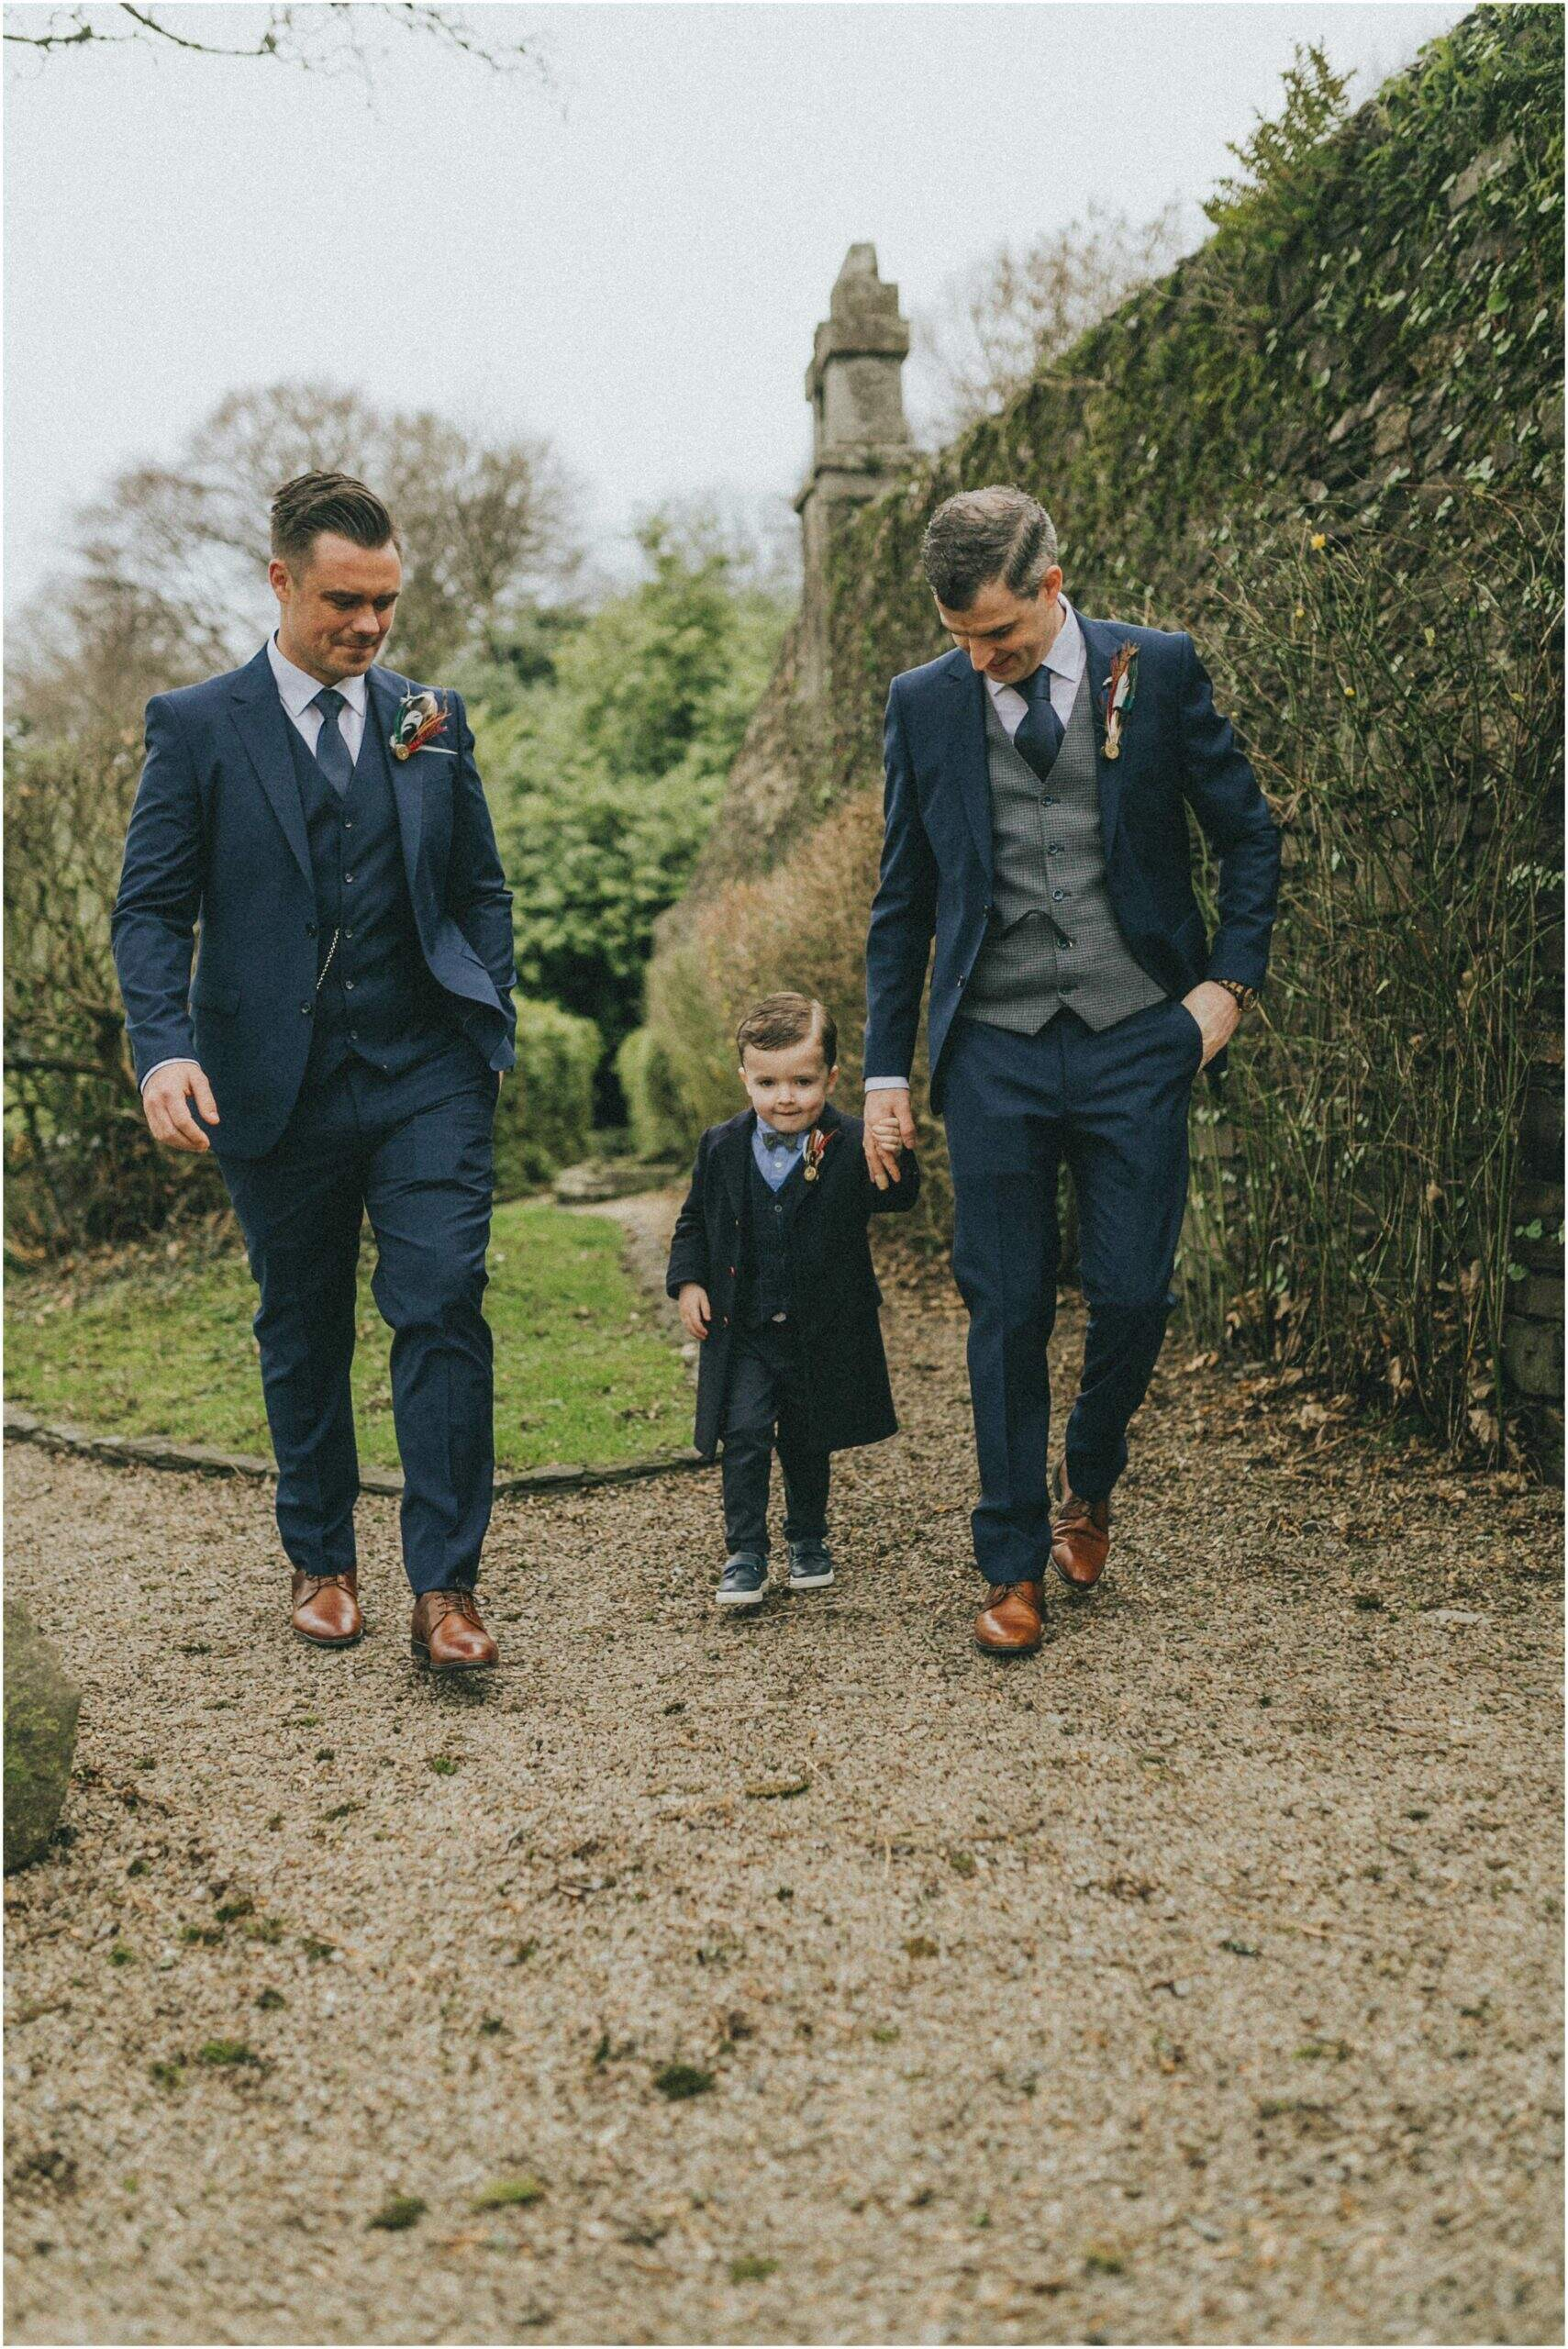 Ballybeg house wicklow fun relaxed wedding00045 scaled - Fun and Relaxed wedding and elopement photography in Ireland, perfect for adventurous and outdoorsy couples